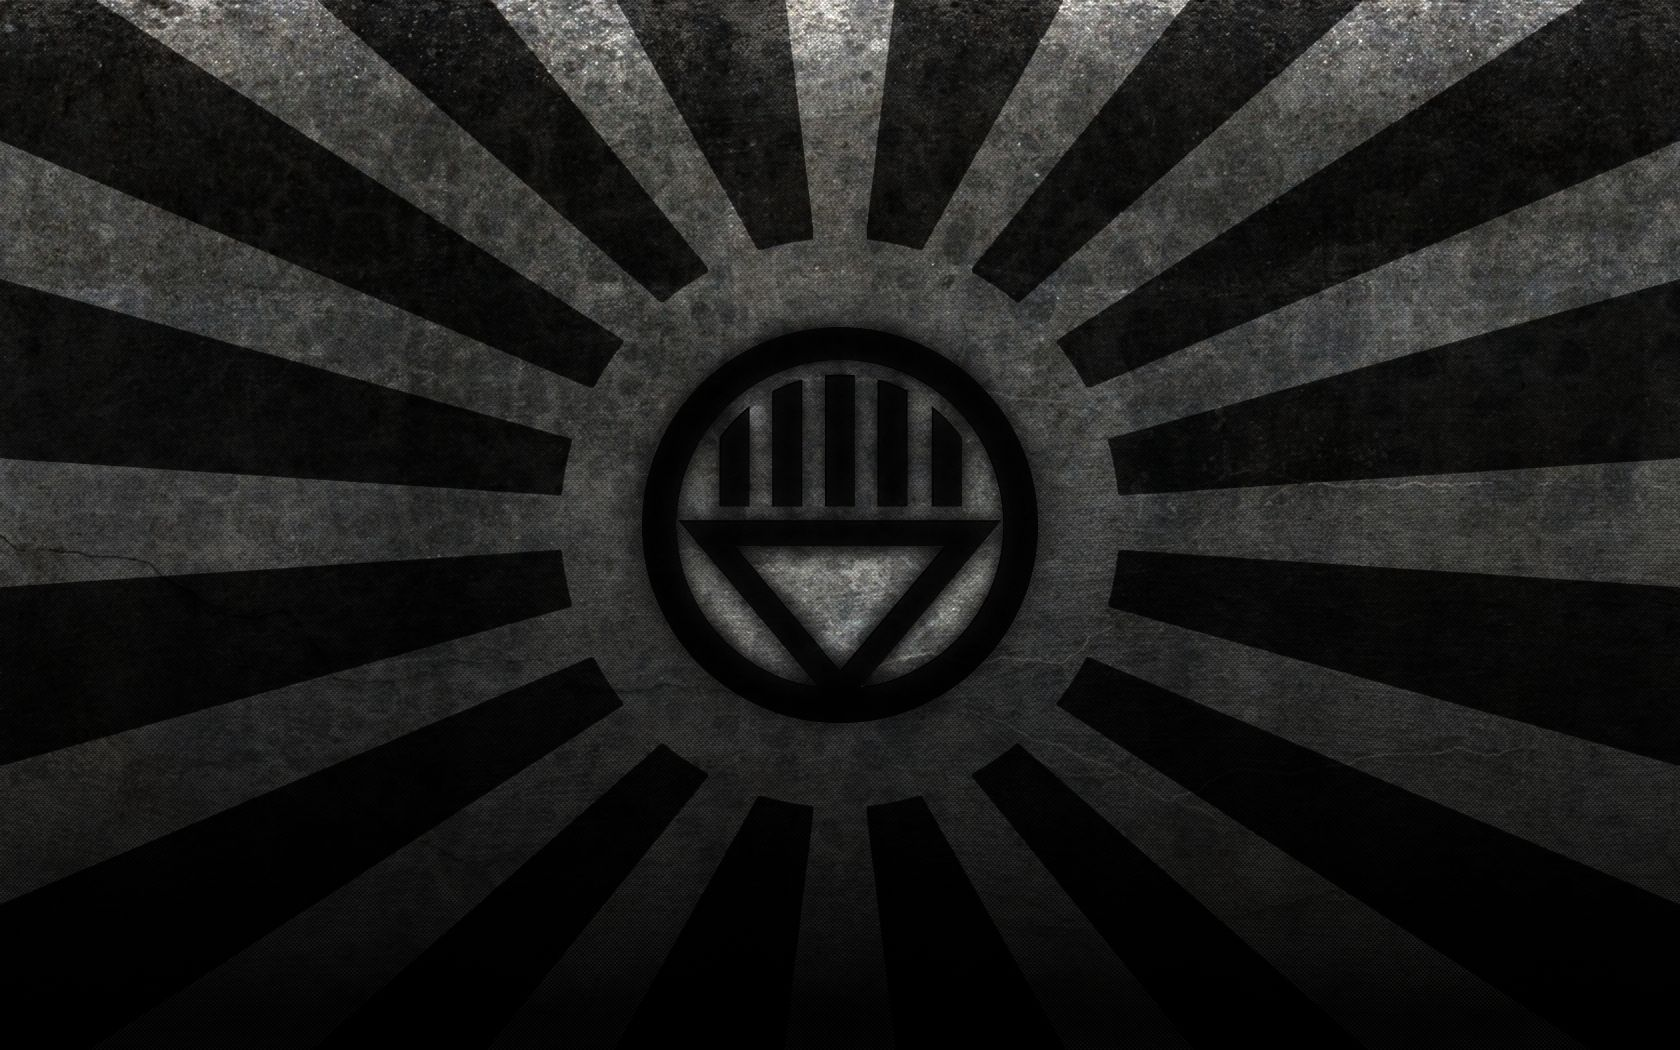 Black lanterns wallpaper by lordshenlongiantart on black lanterns wallpaper by lordshenlongiantart on deviantart biocorpaavc Gallery